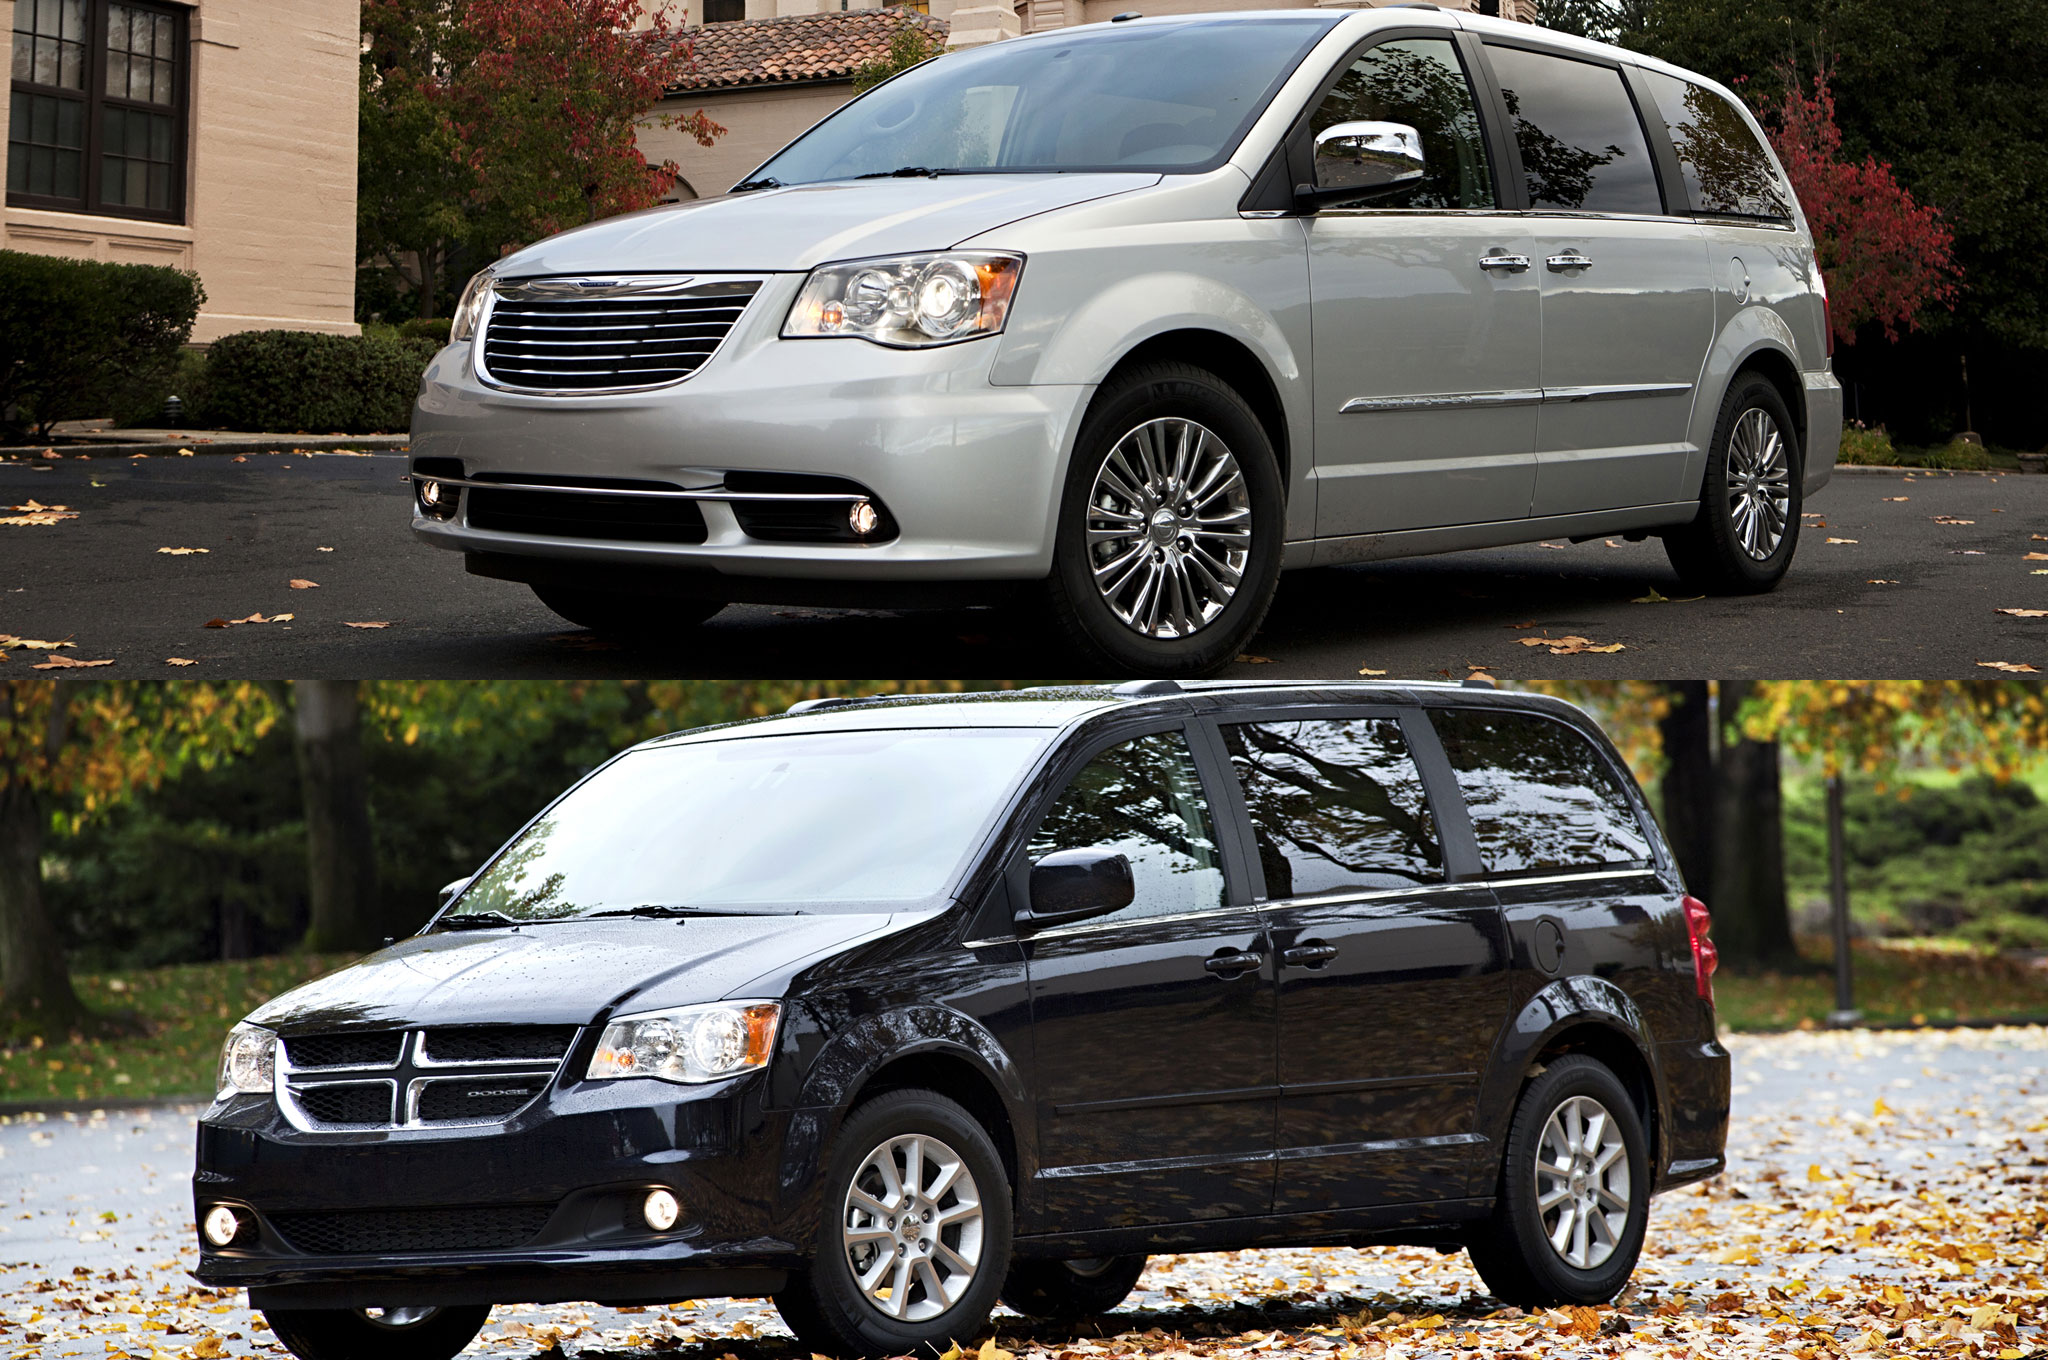 2013 Chrysler Town And Country #13